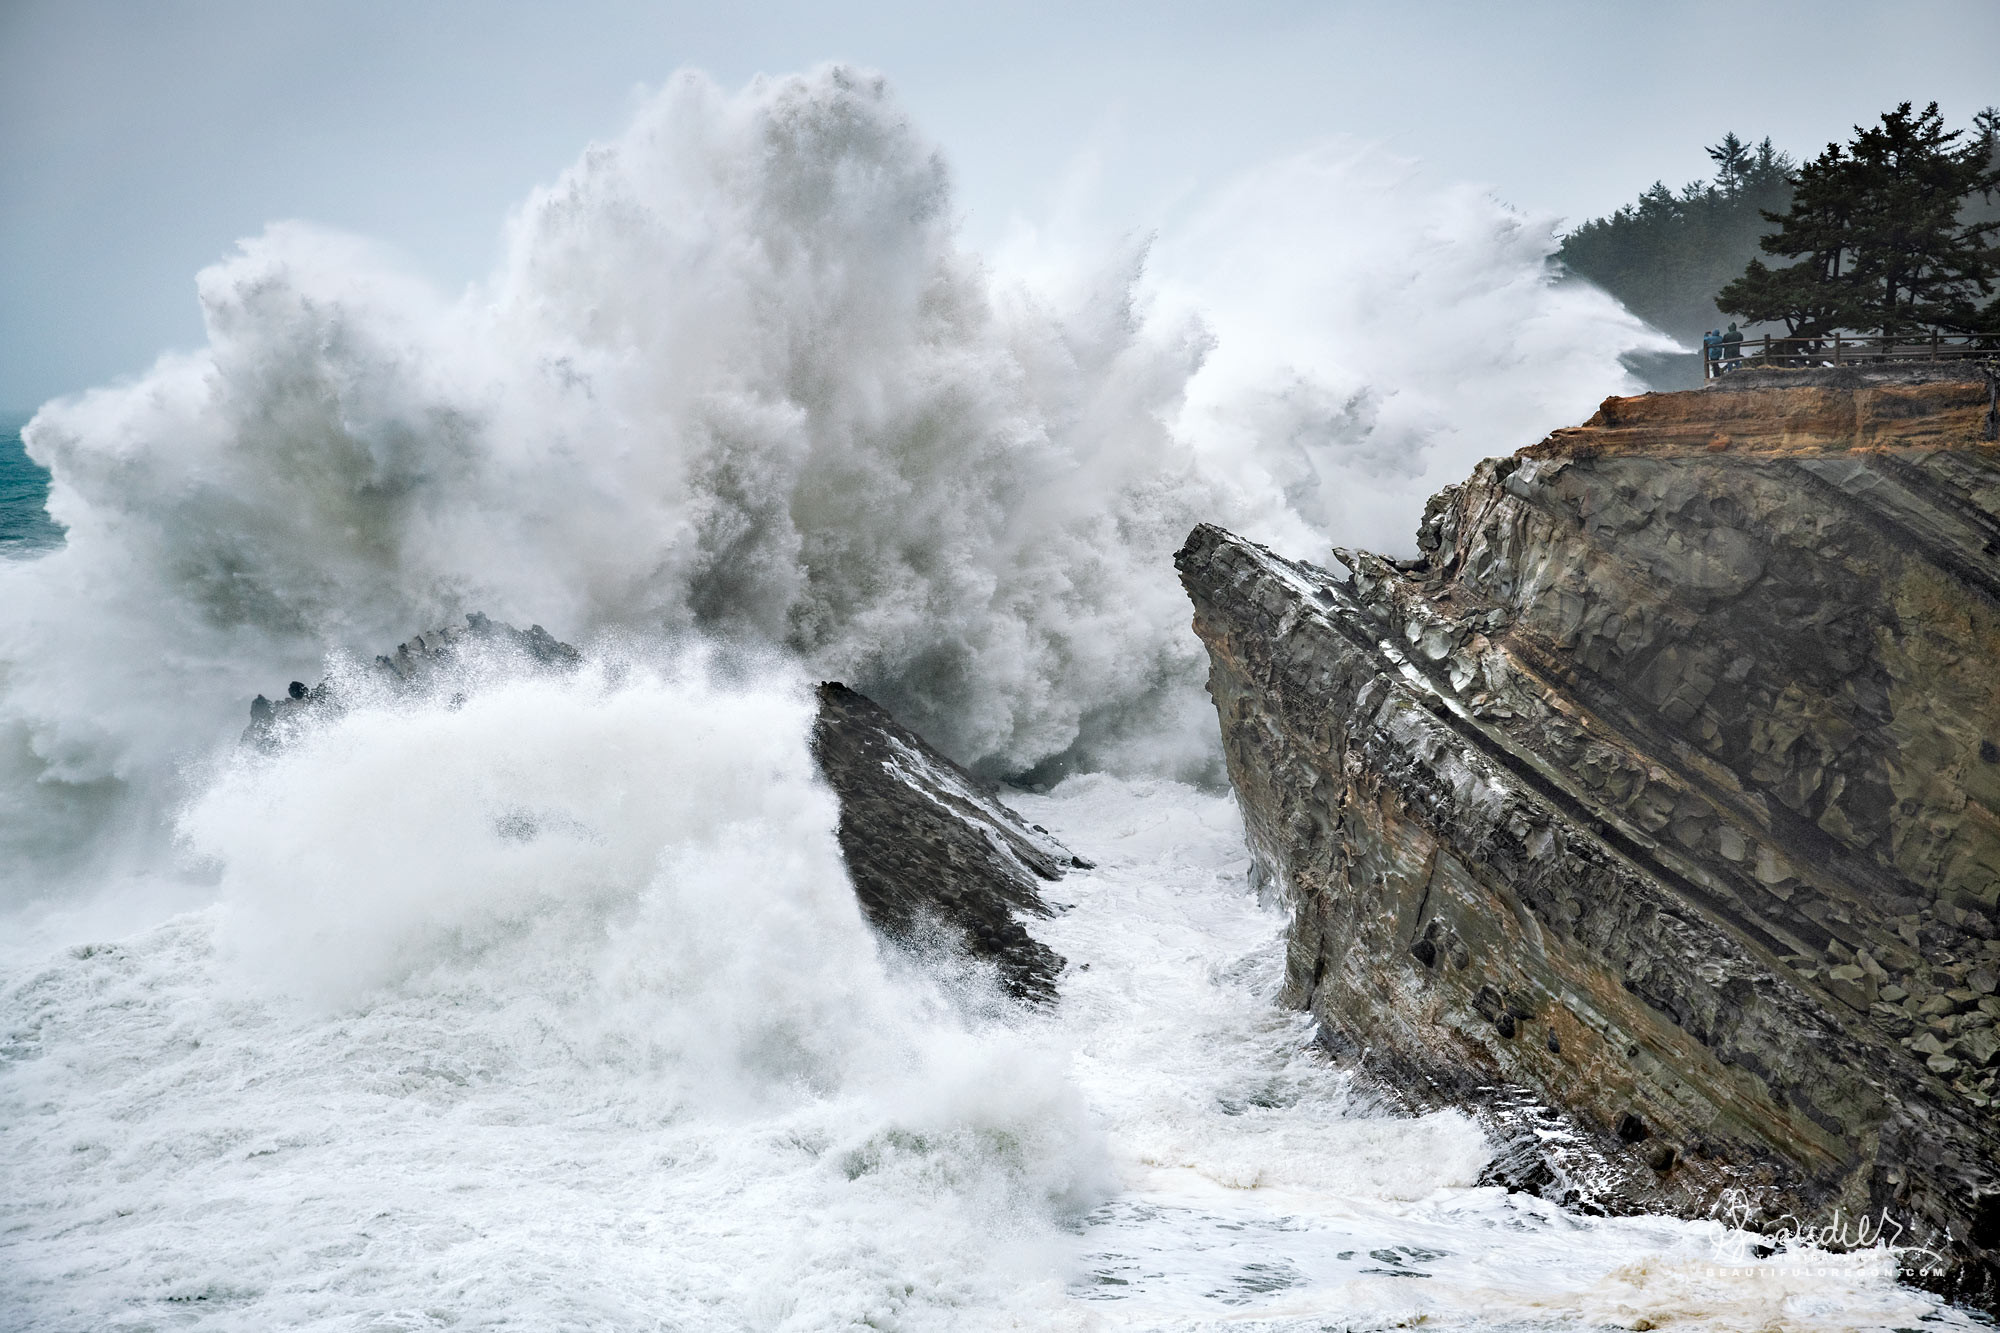 Massive winter storm waves explode on headland rocks at Shore Acres State Park. Cape Arago on Oregon's central coast. Coos County landscape photography.